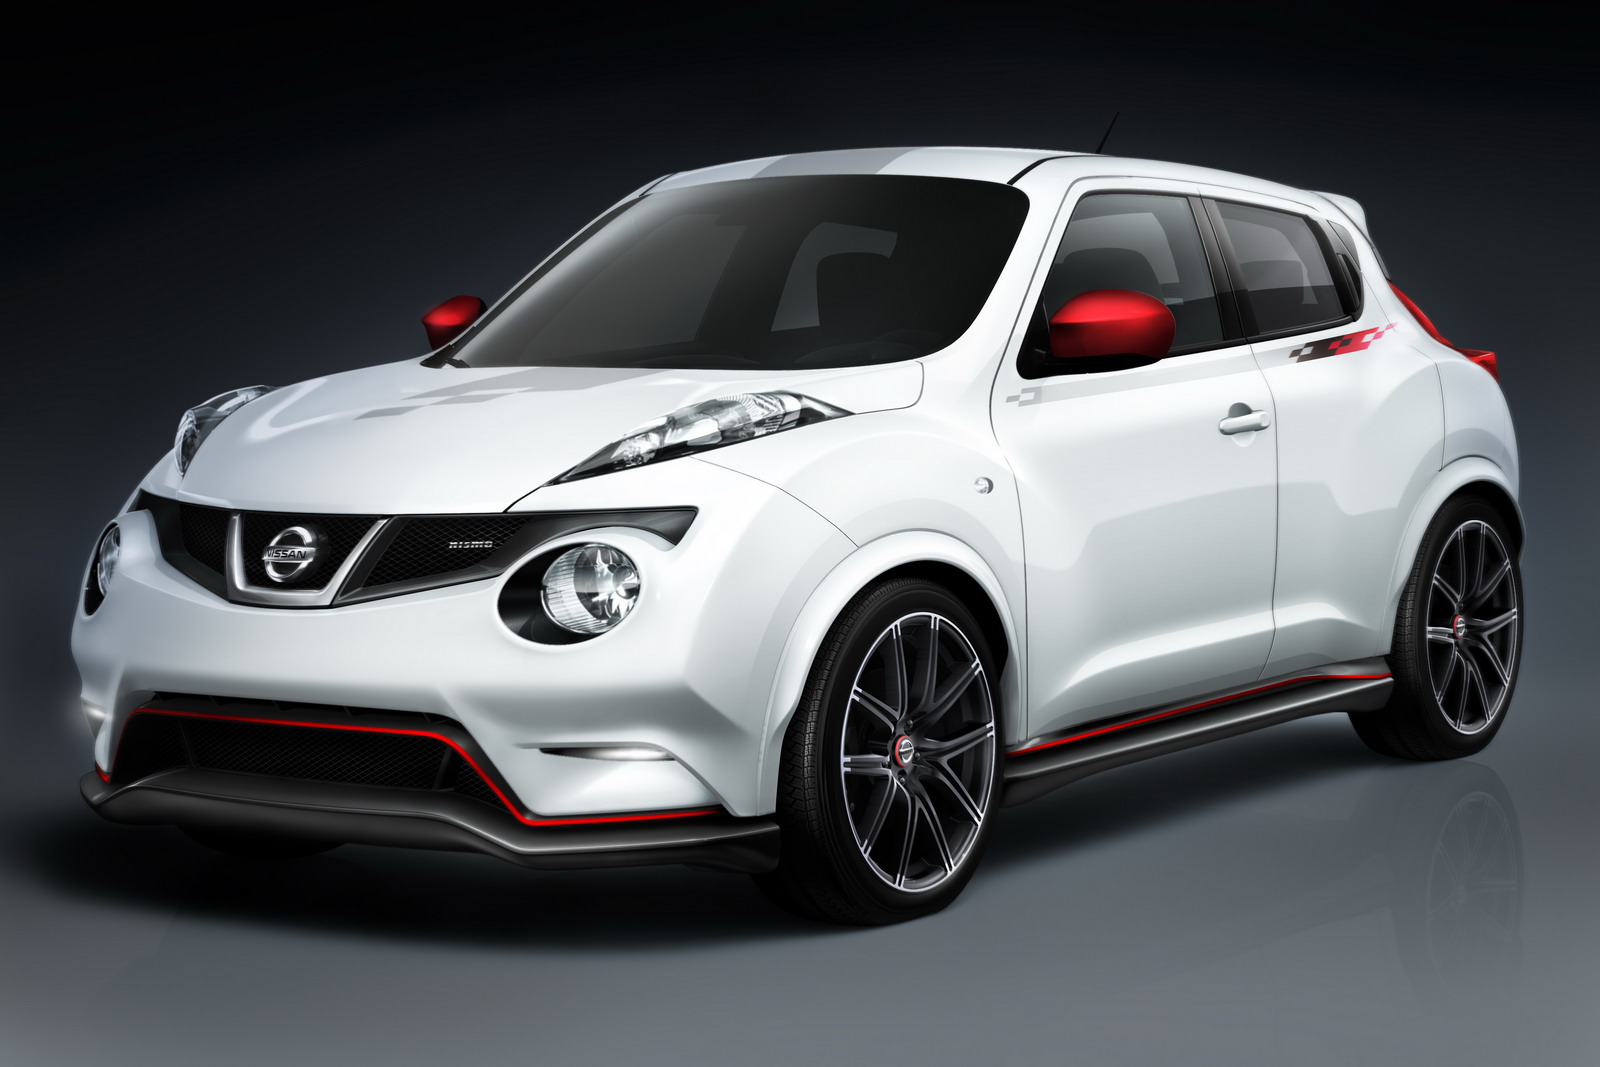 New Nissan Juke Nismo Concept Sports 2 New 2012 Nissan Juke Nismo Concept launches in the Tokyo Motor Show